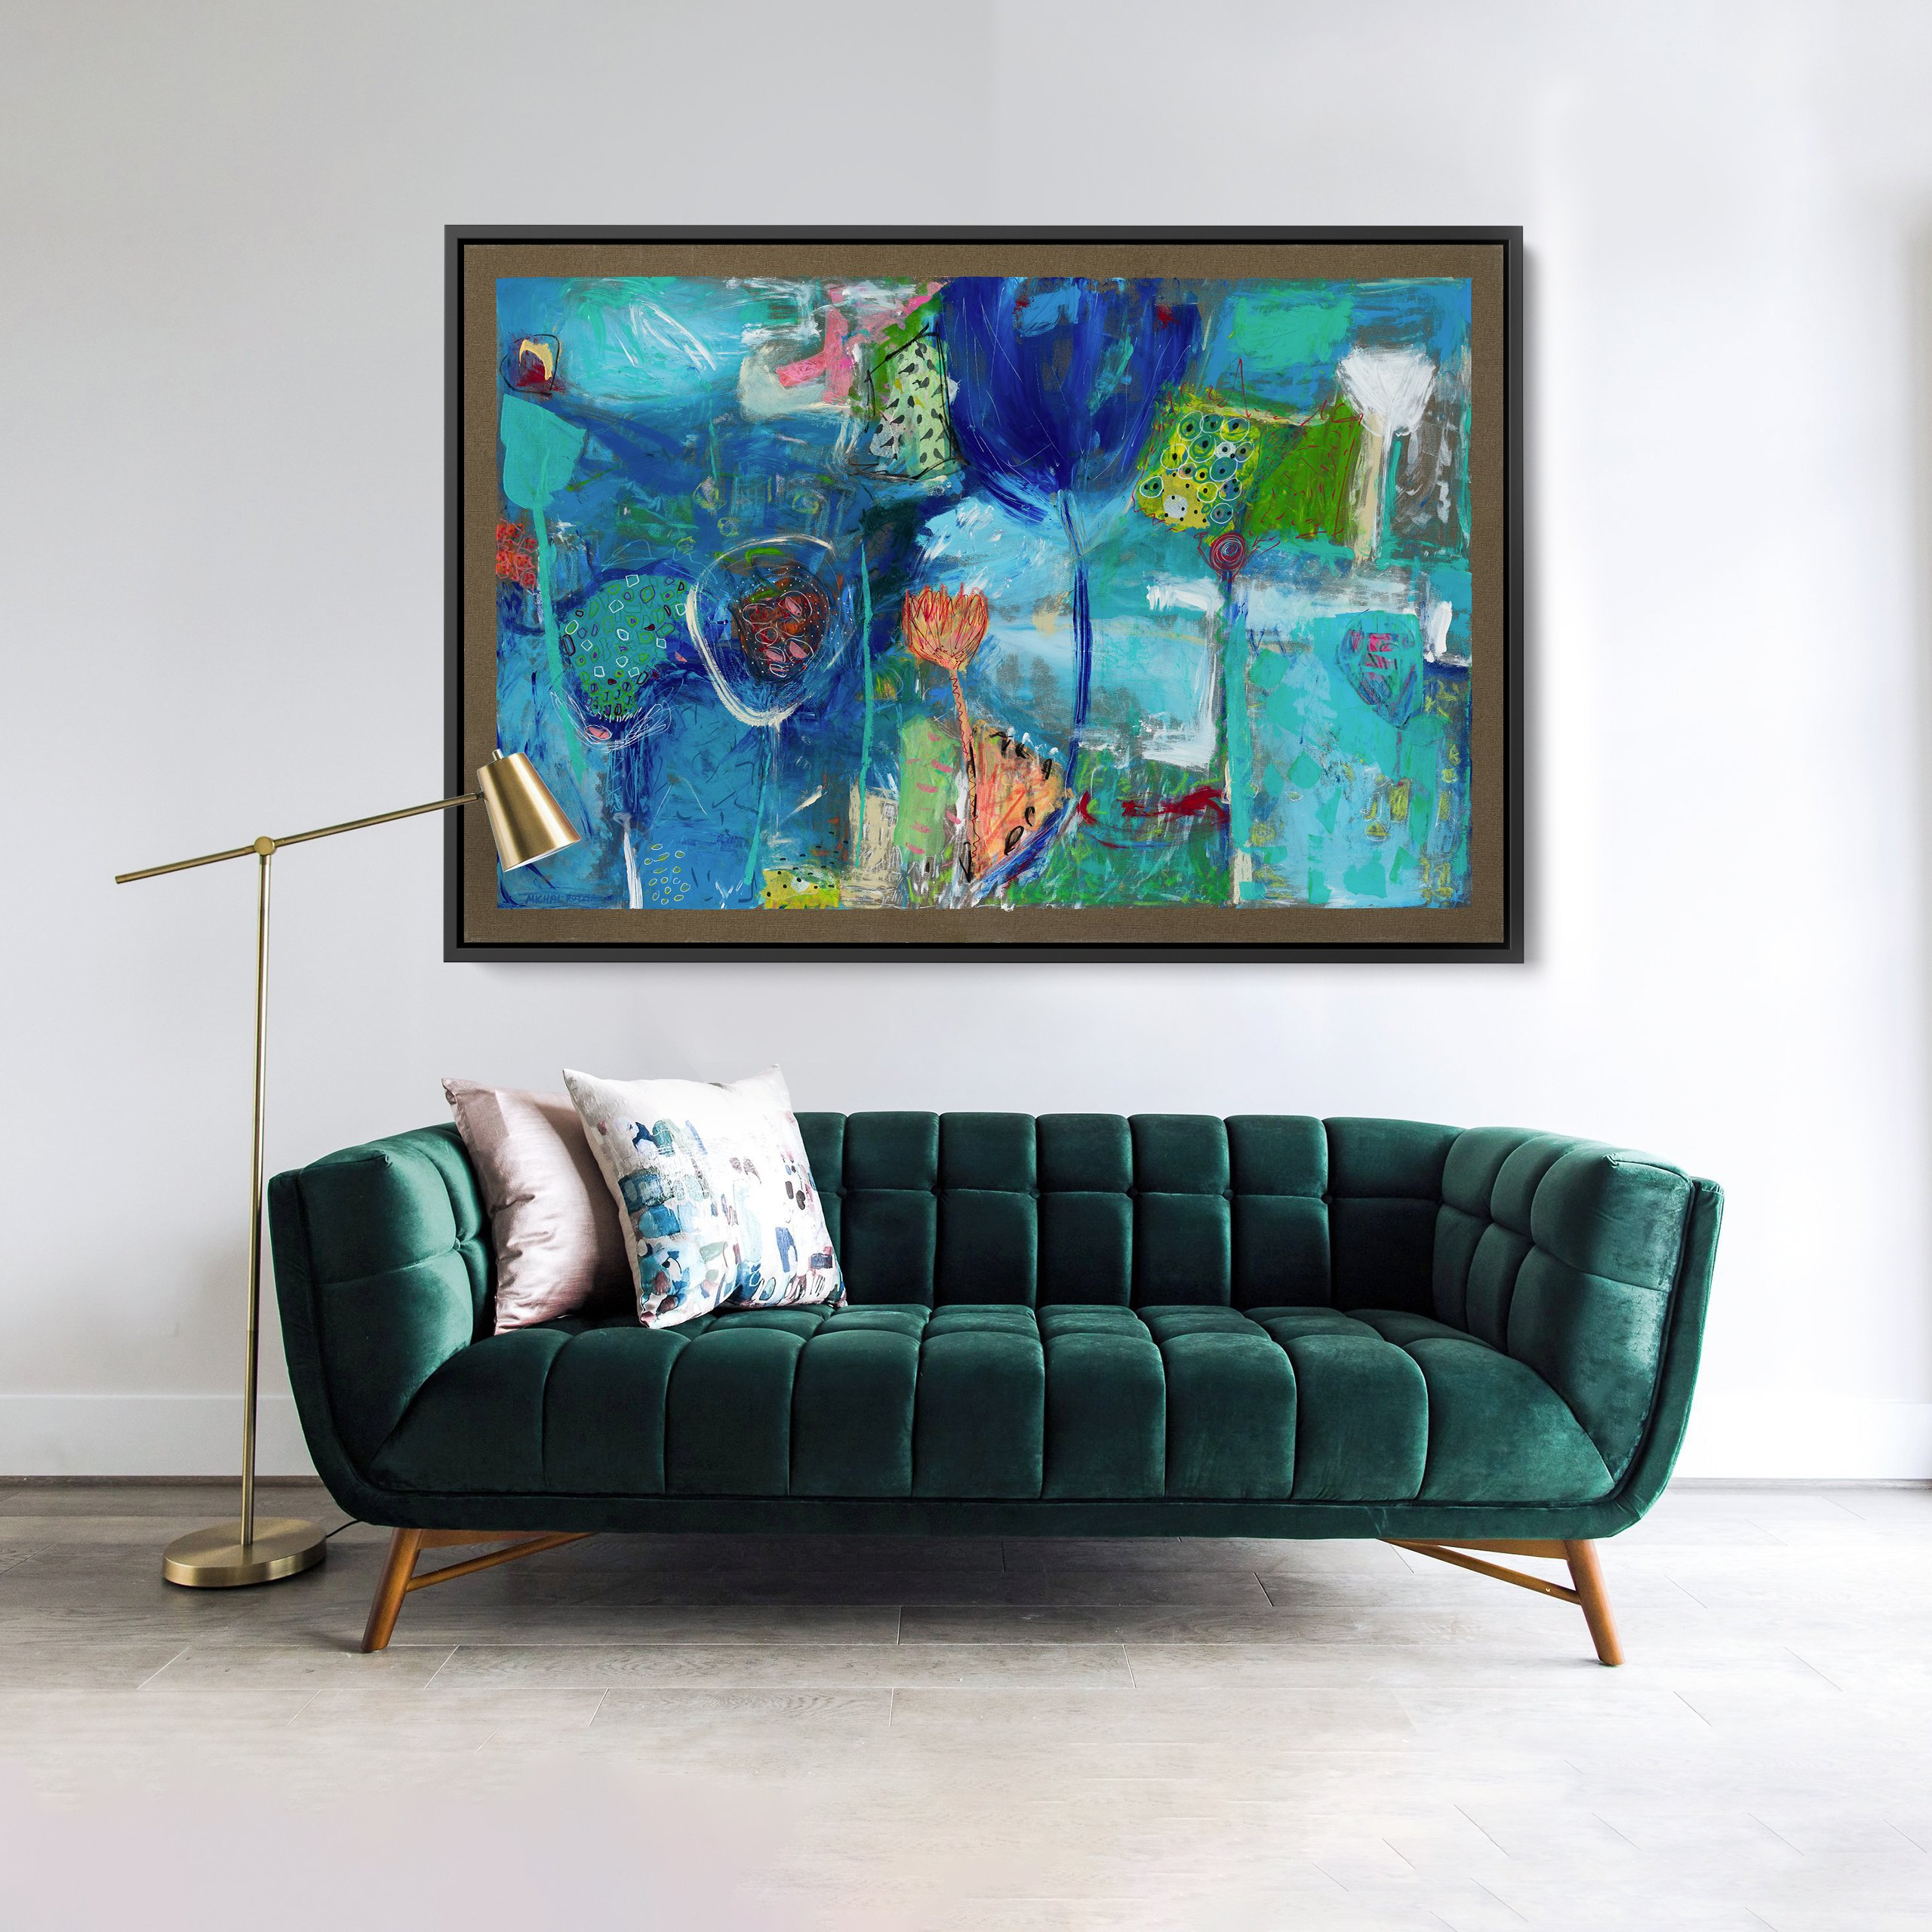 Abstract art featuring multiple shades of blue and earth tones. For home decor and interior design